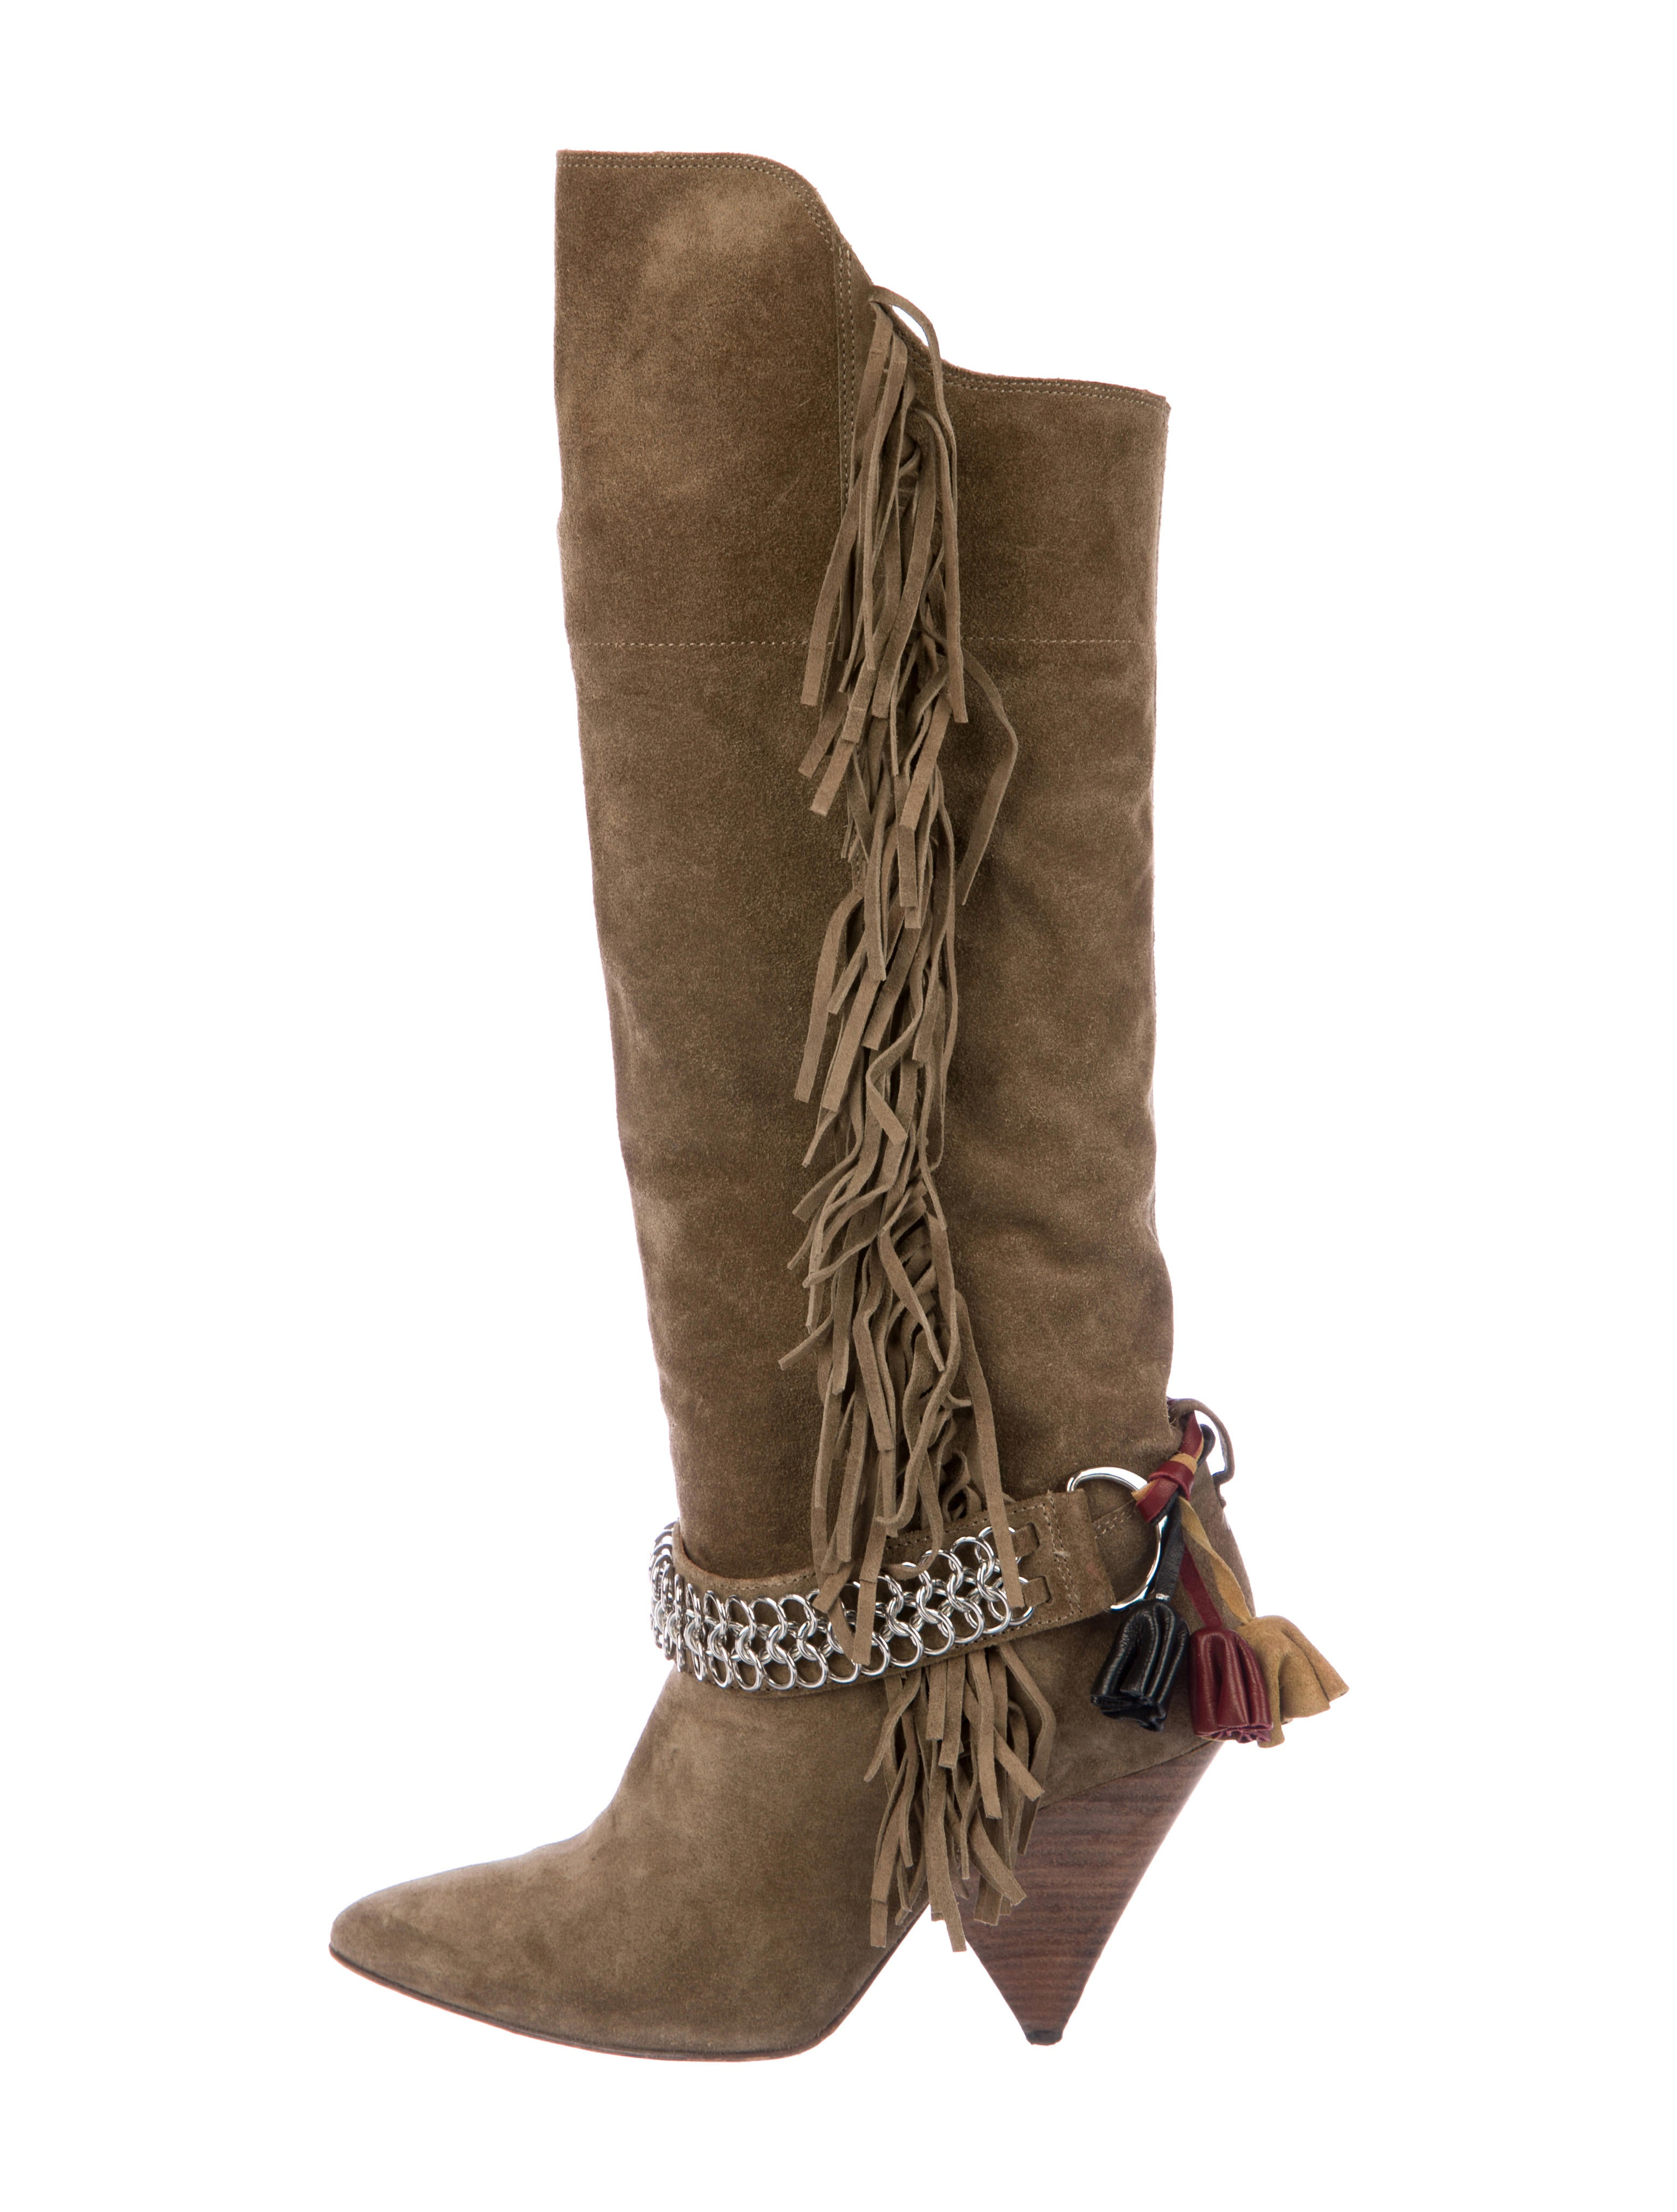 07e8a8a2abb4 Isabel Marant Suede Knee-High Boots - Shoes - ISA68994